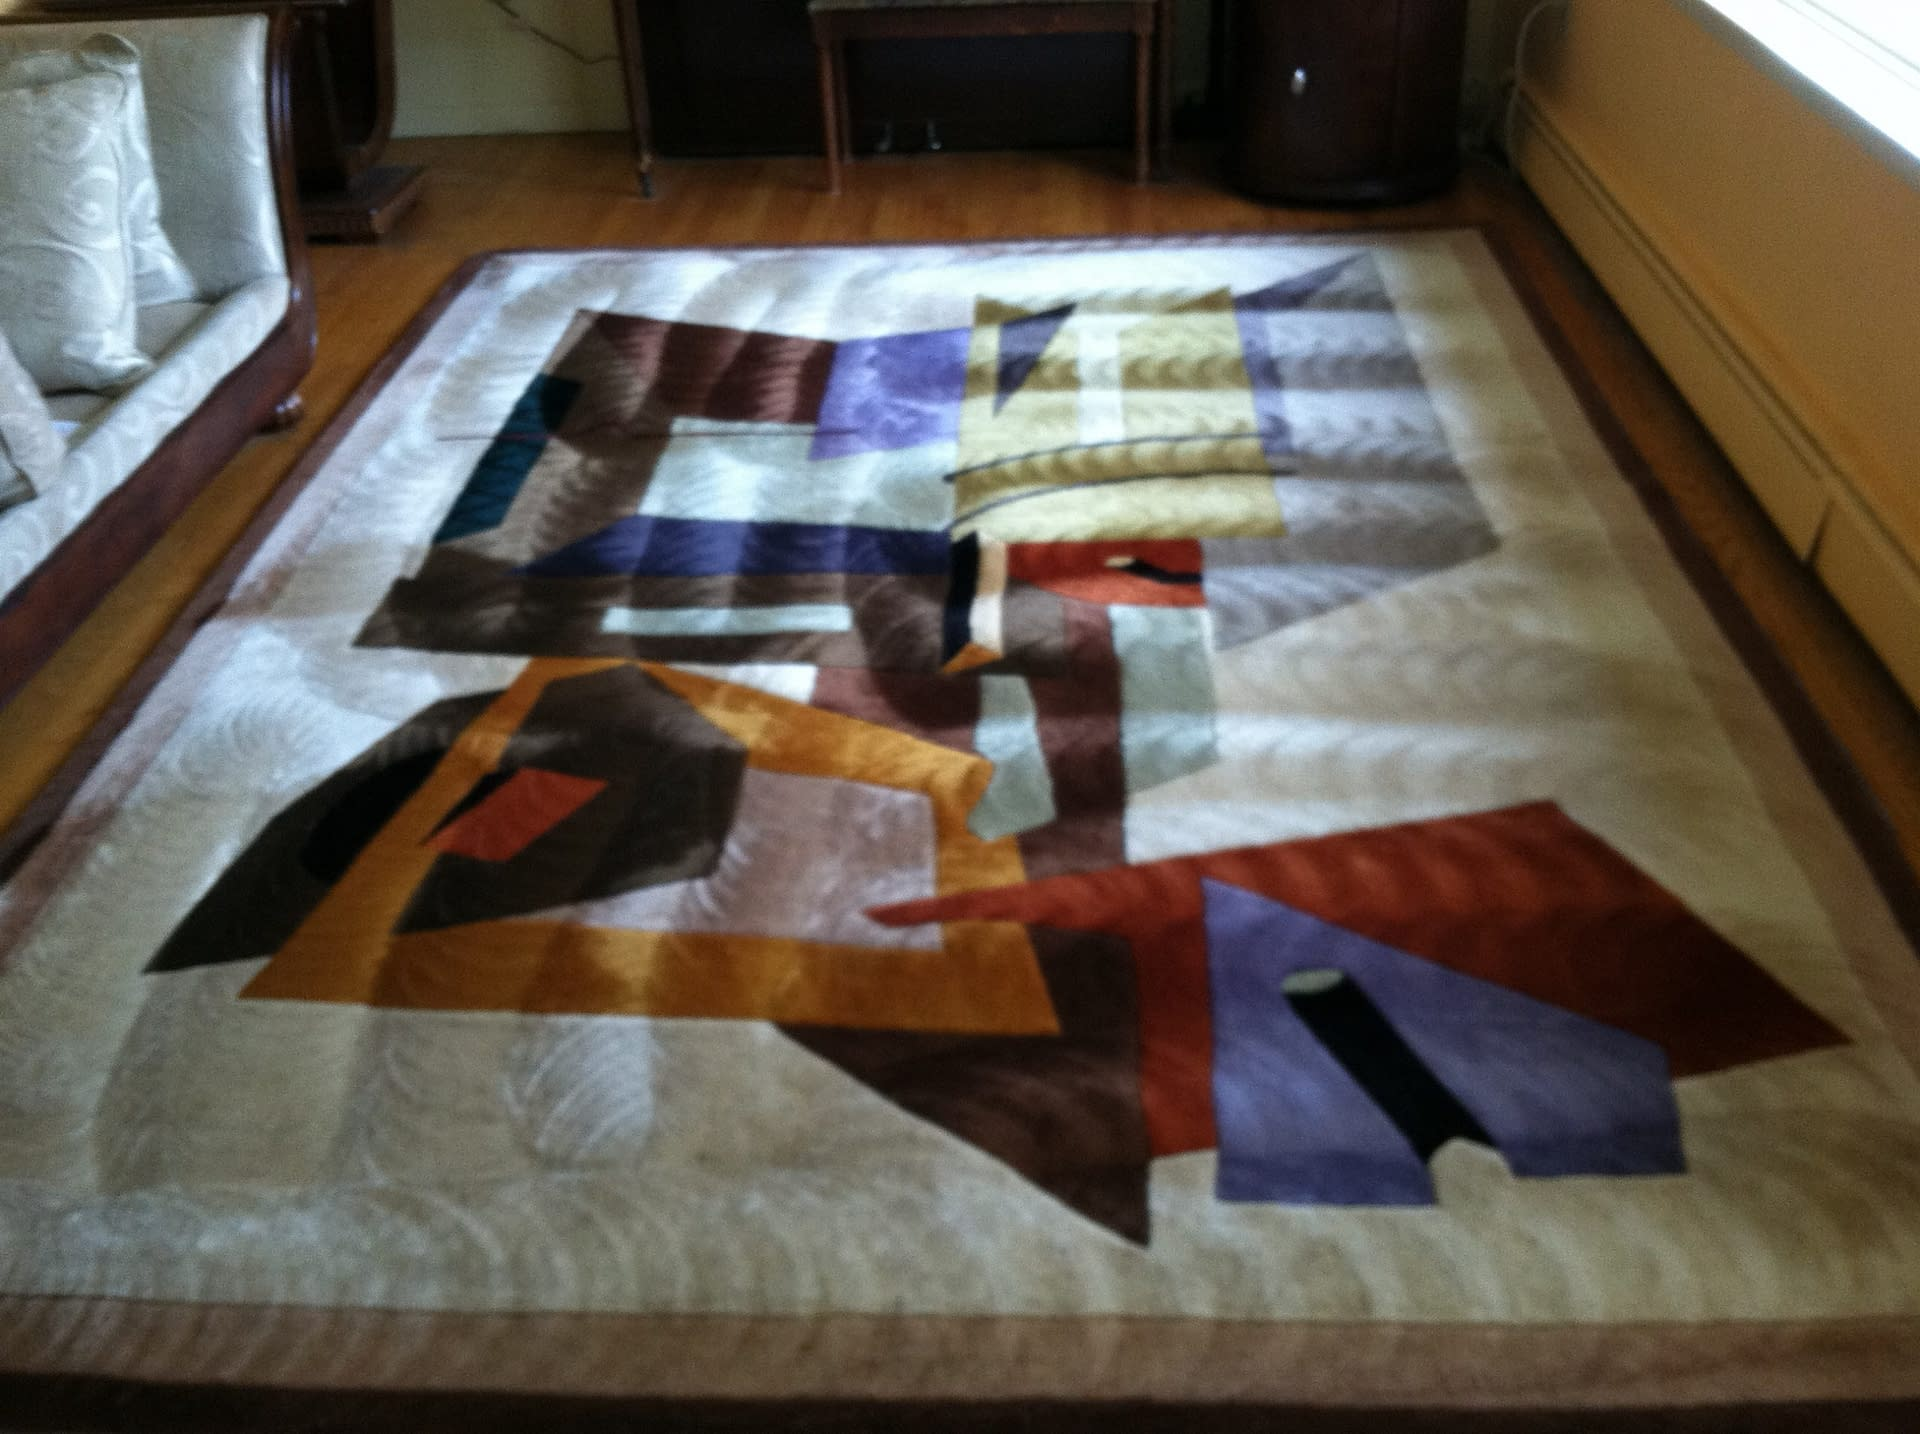 This rug was cleaned in Furlong, PA.